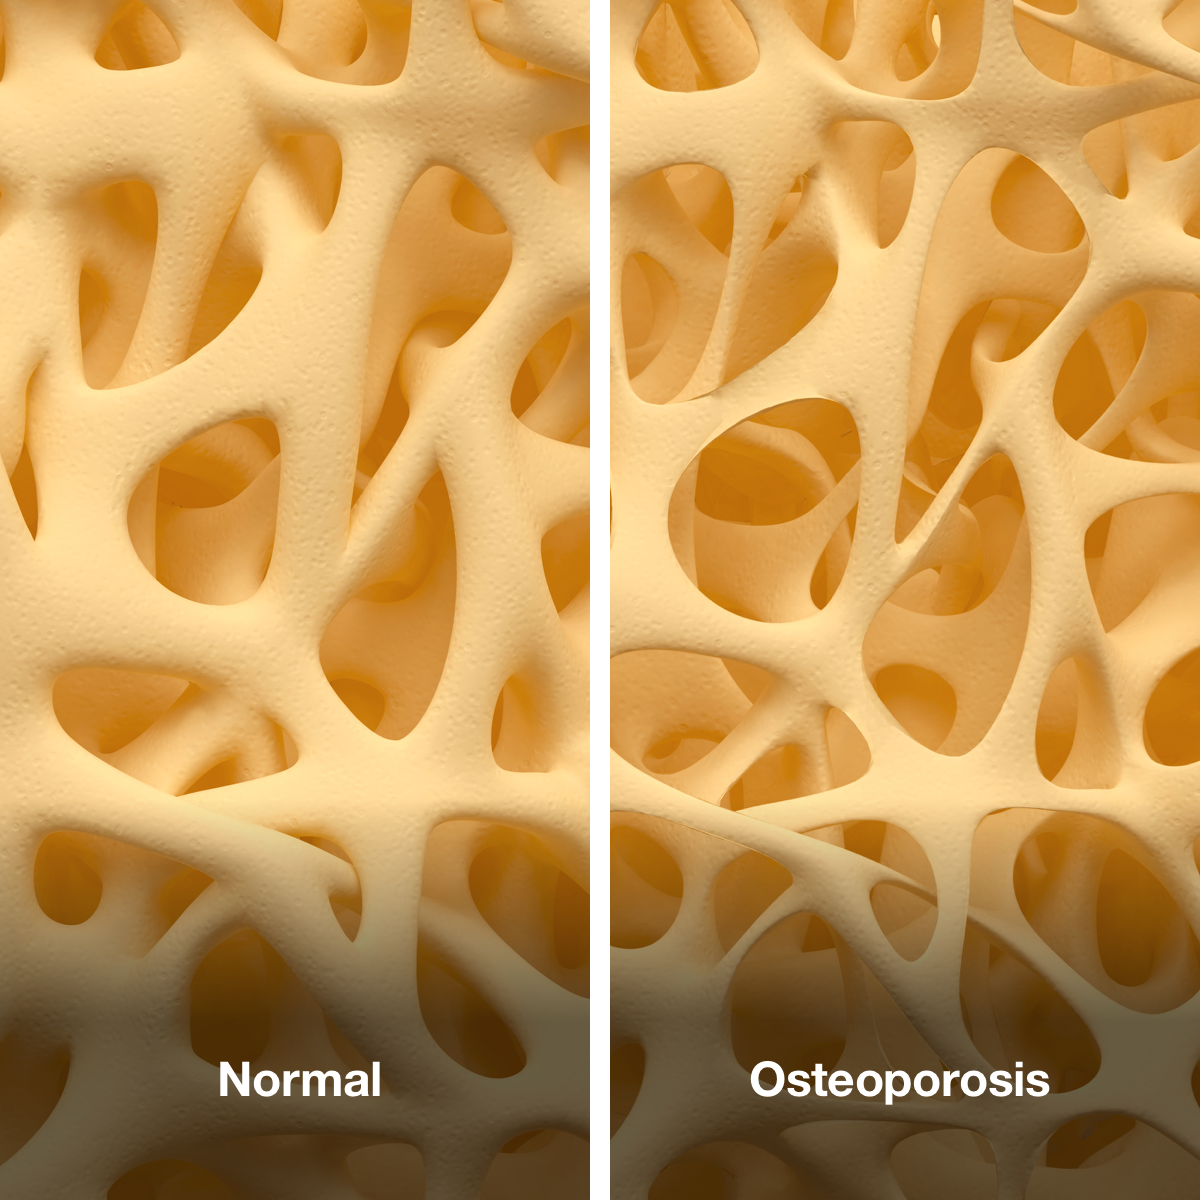 An image of healthy bones on the left, and bones affected by osteoporosis on the right